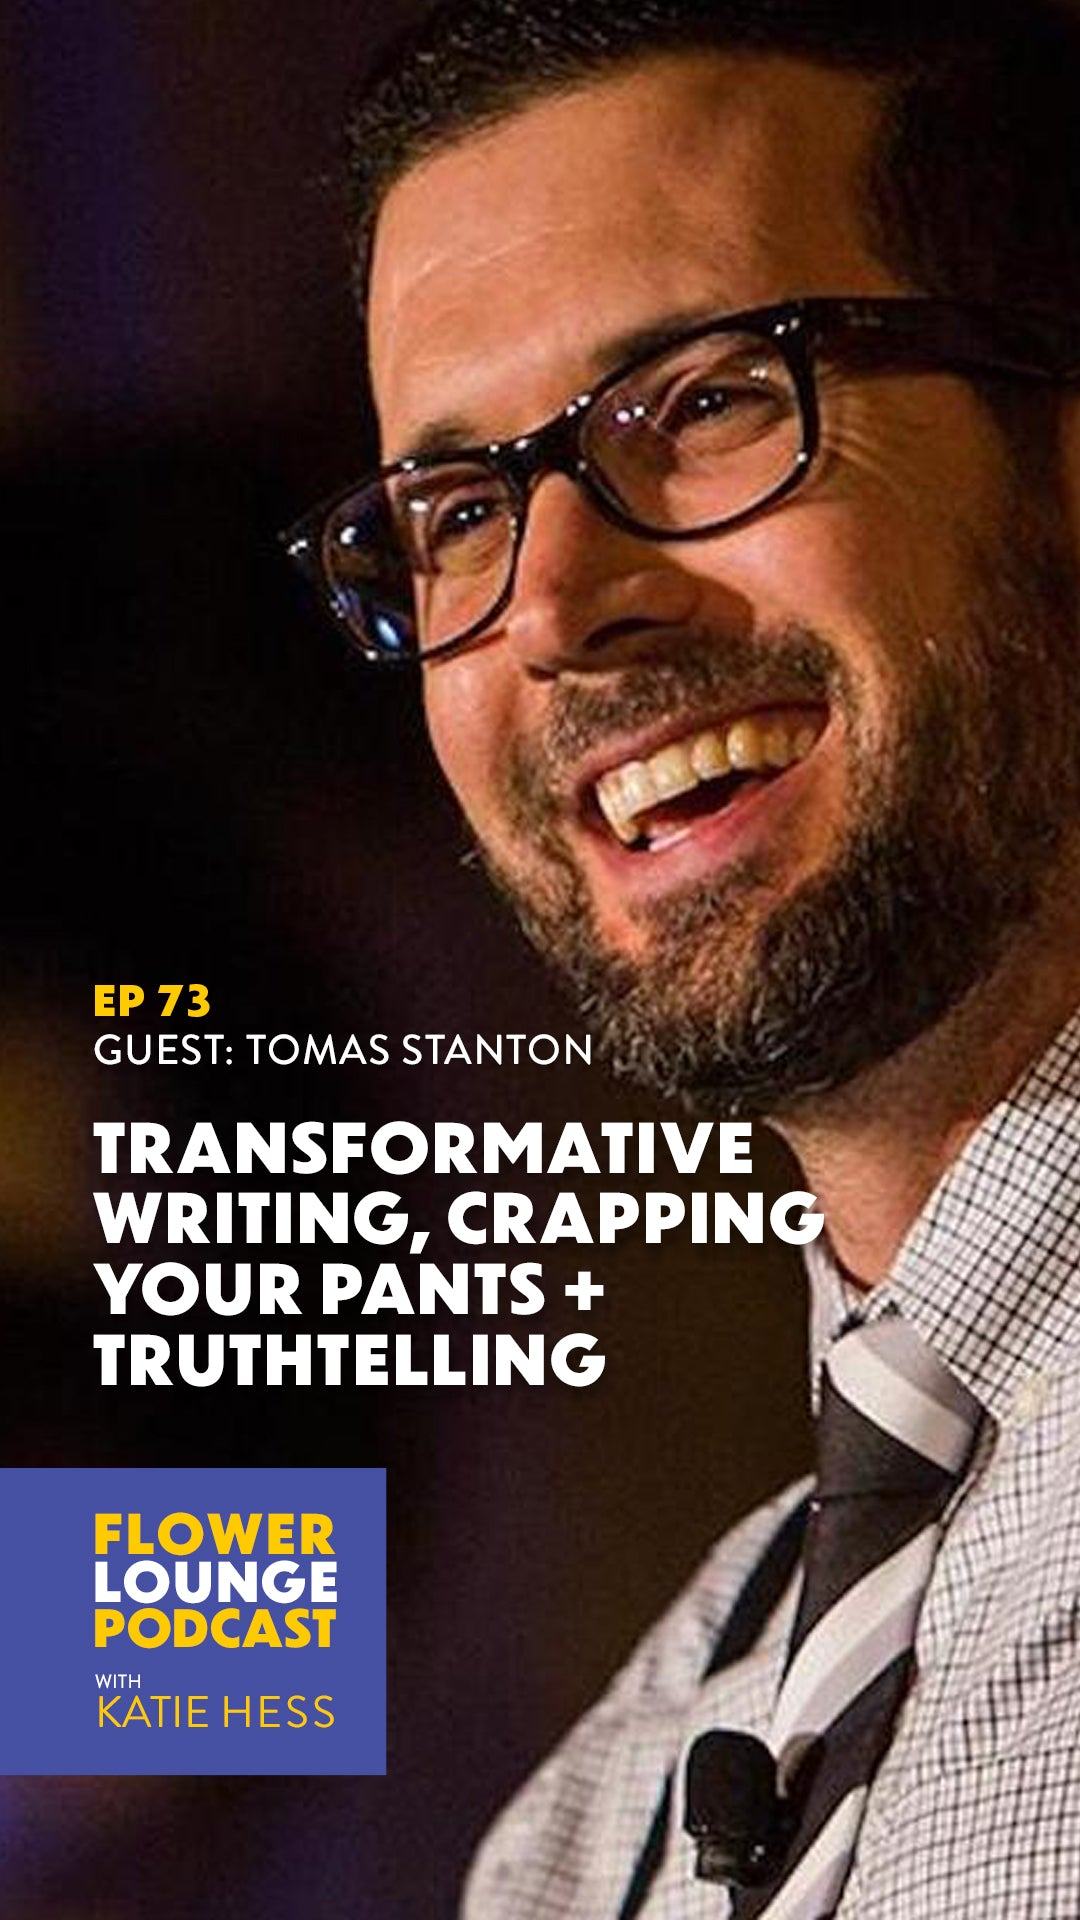 Transformative Writing, Crapping Your Pants + Truthtelling with Tomas Stanton on the Flowerlounge Podcast with Katie Hess